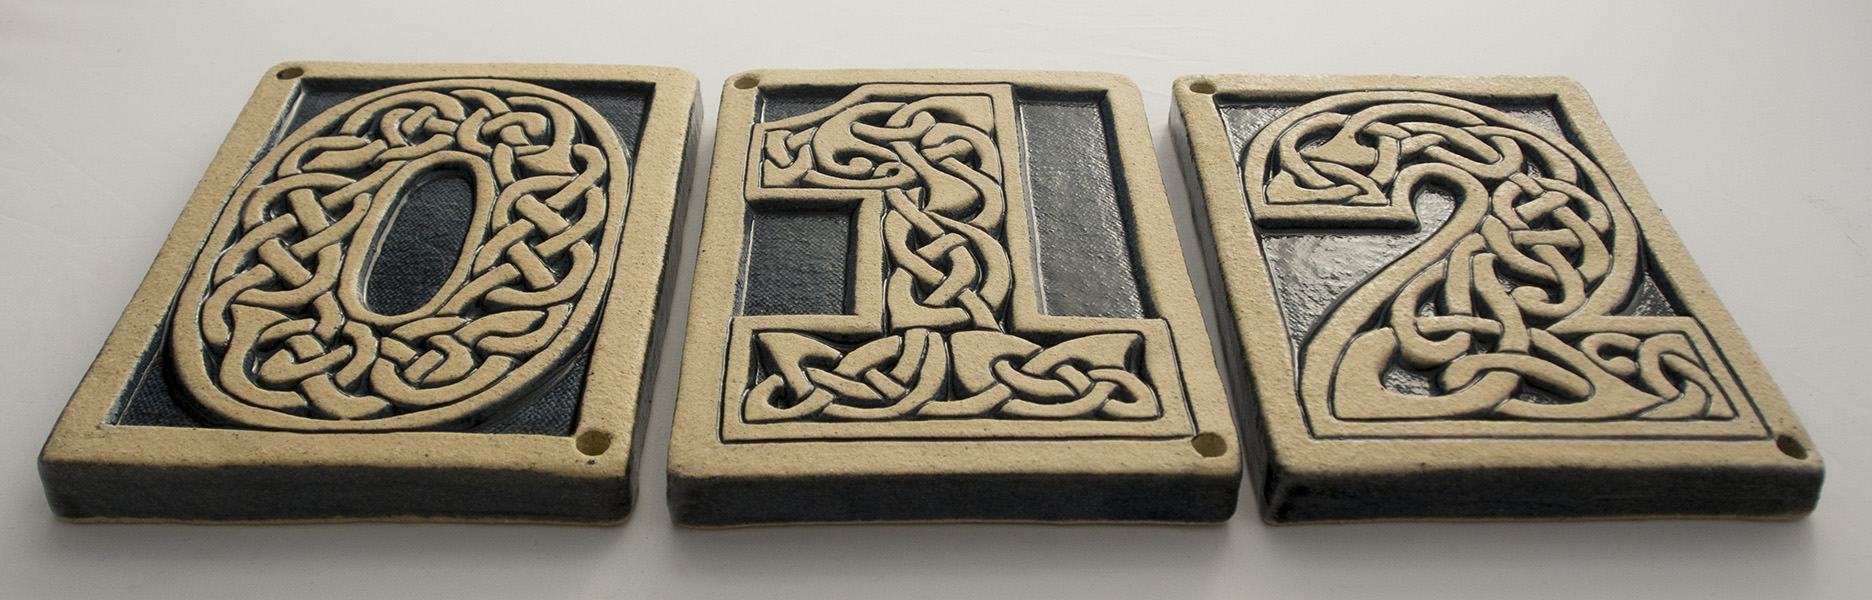 Celtic knot house number 6 handmade ceramic tile celtic knot number tile number 6 dailygadgetfo Gallery